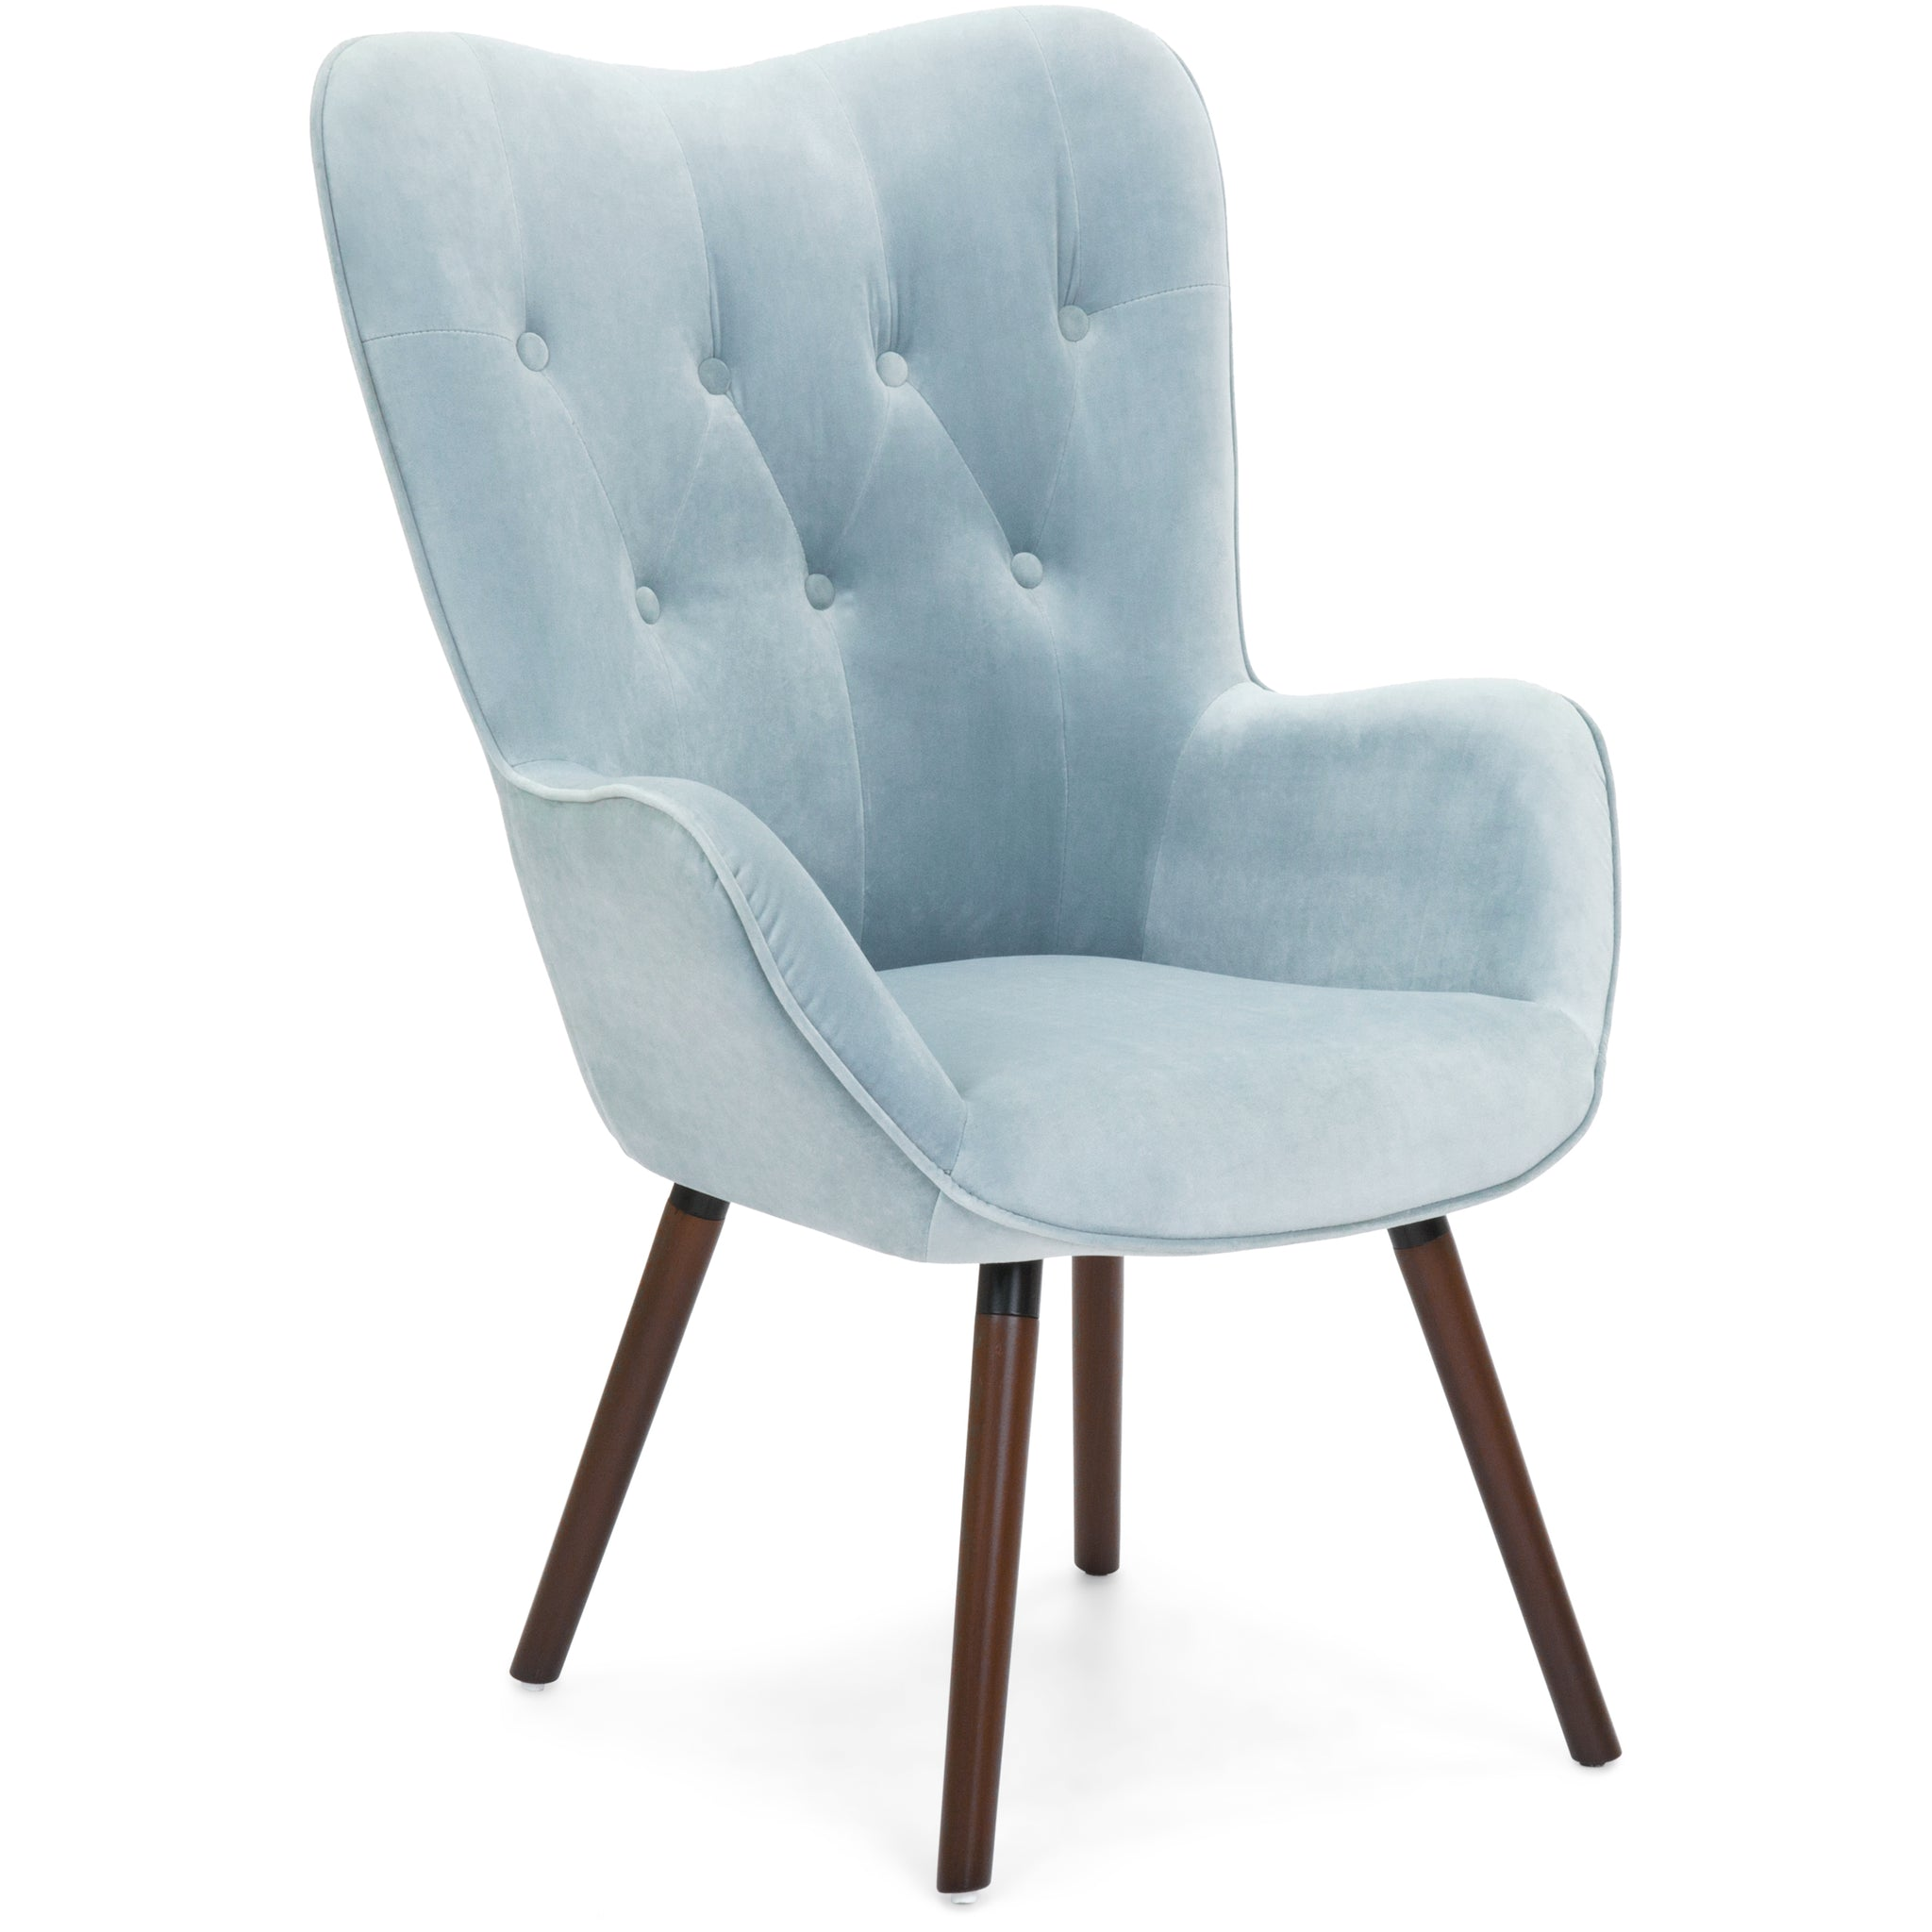 Contemporary Silk Velvet Tufted With Wooden Legs And Buttons Accent Chair    Blue